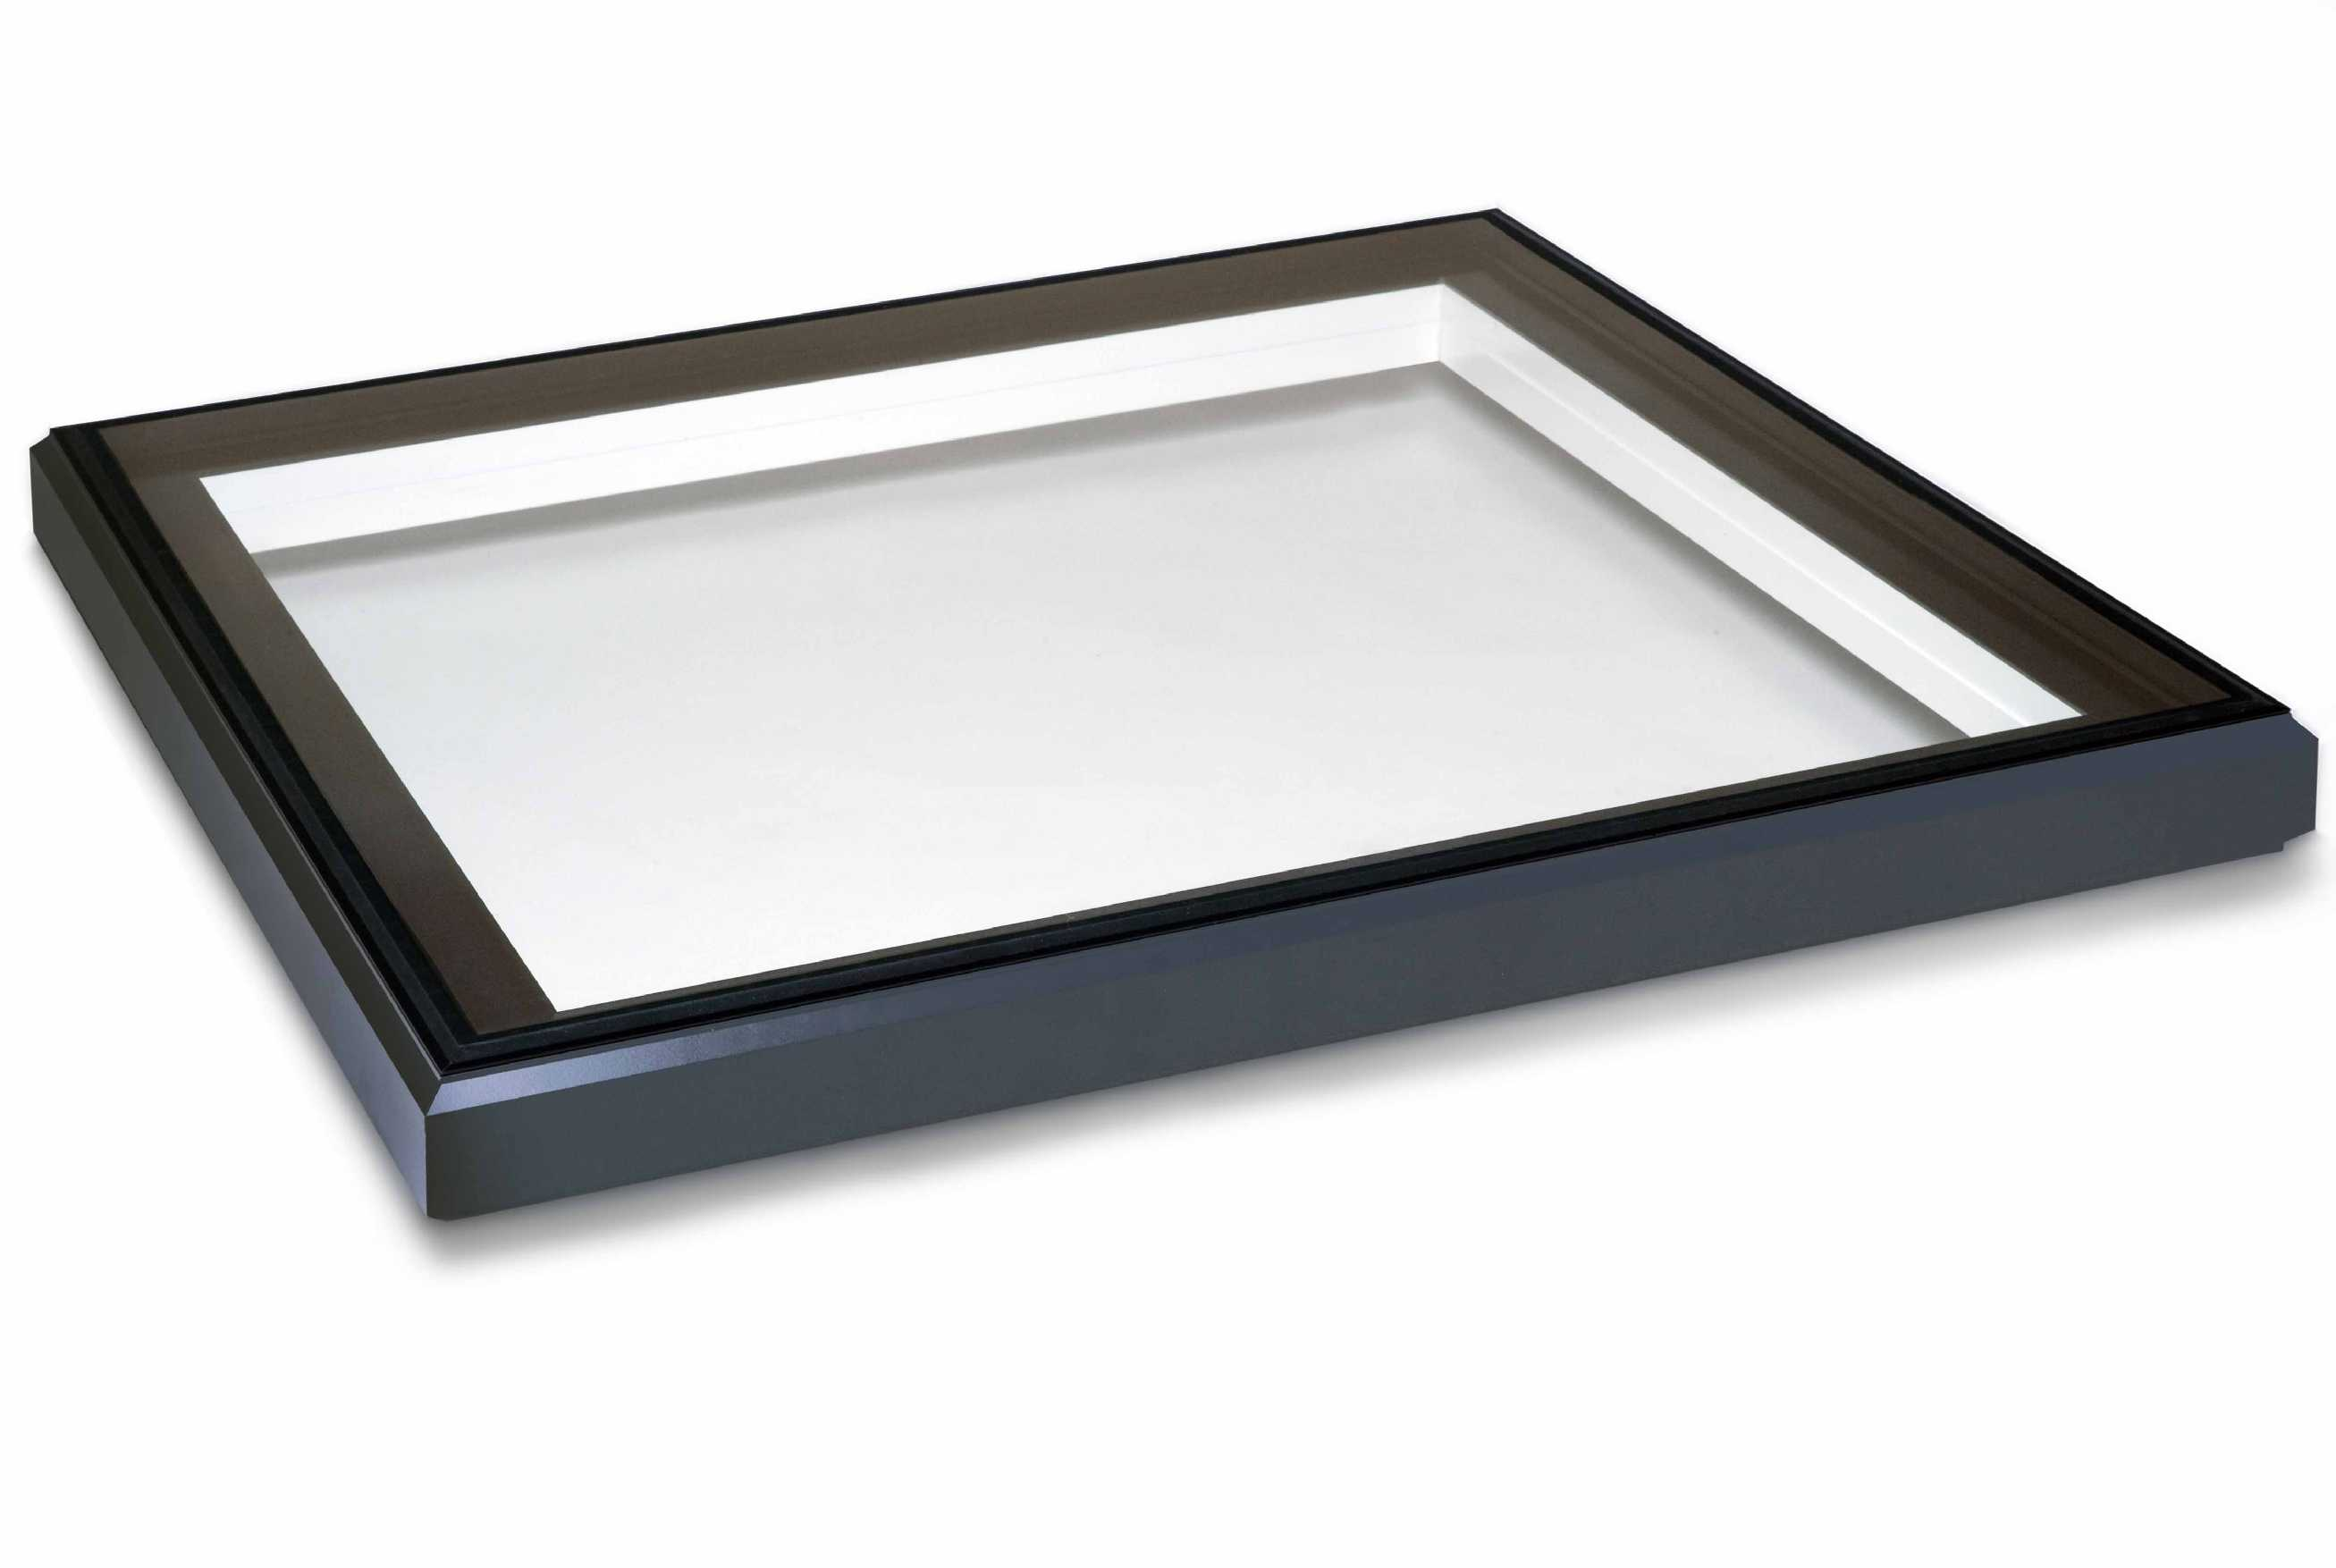 Buy EcoGard Flat Roof light, Triple Glazed, Fixed, 1,000mm x 1,500mm online today